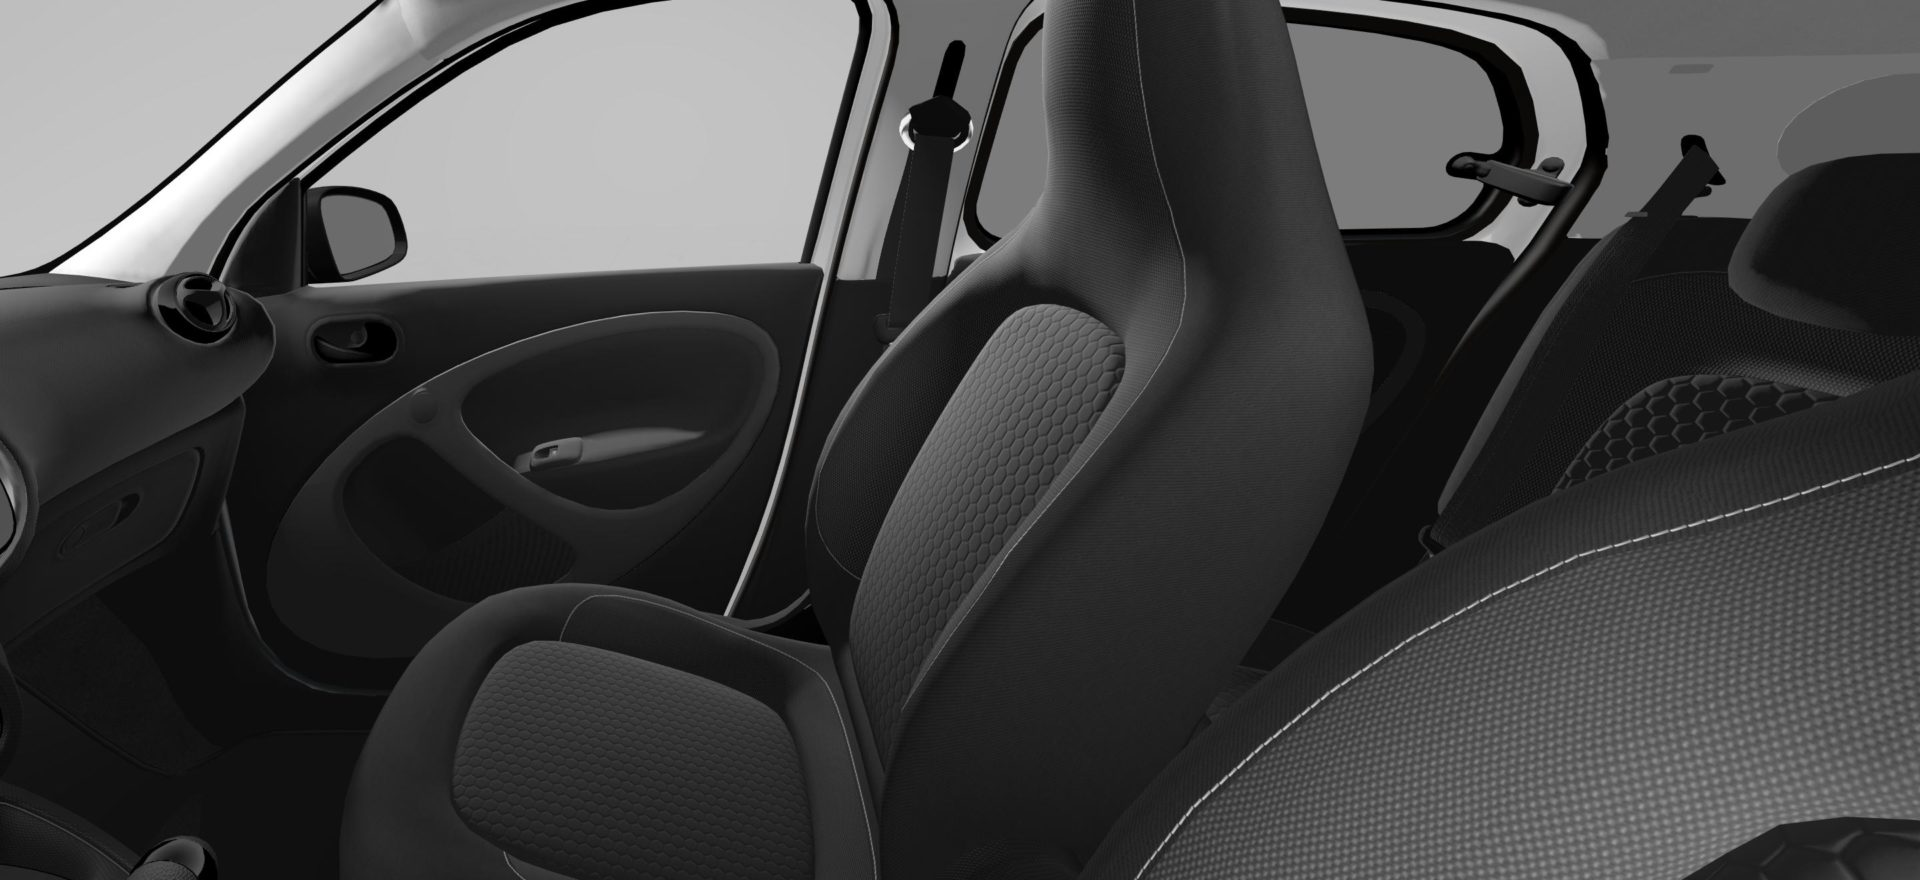 Renting Smart ForFour Asientos